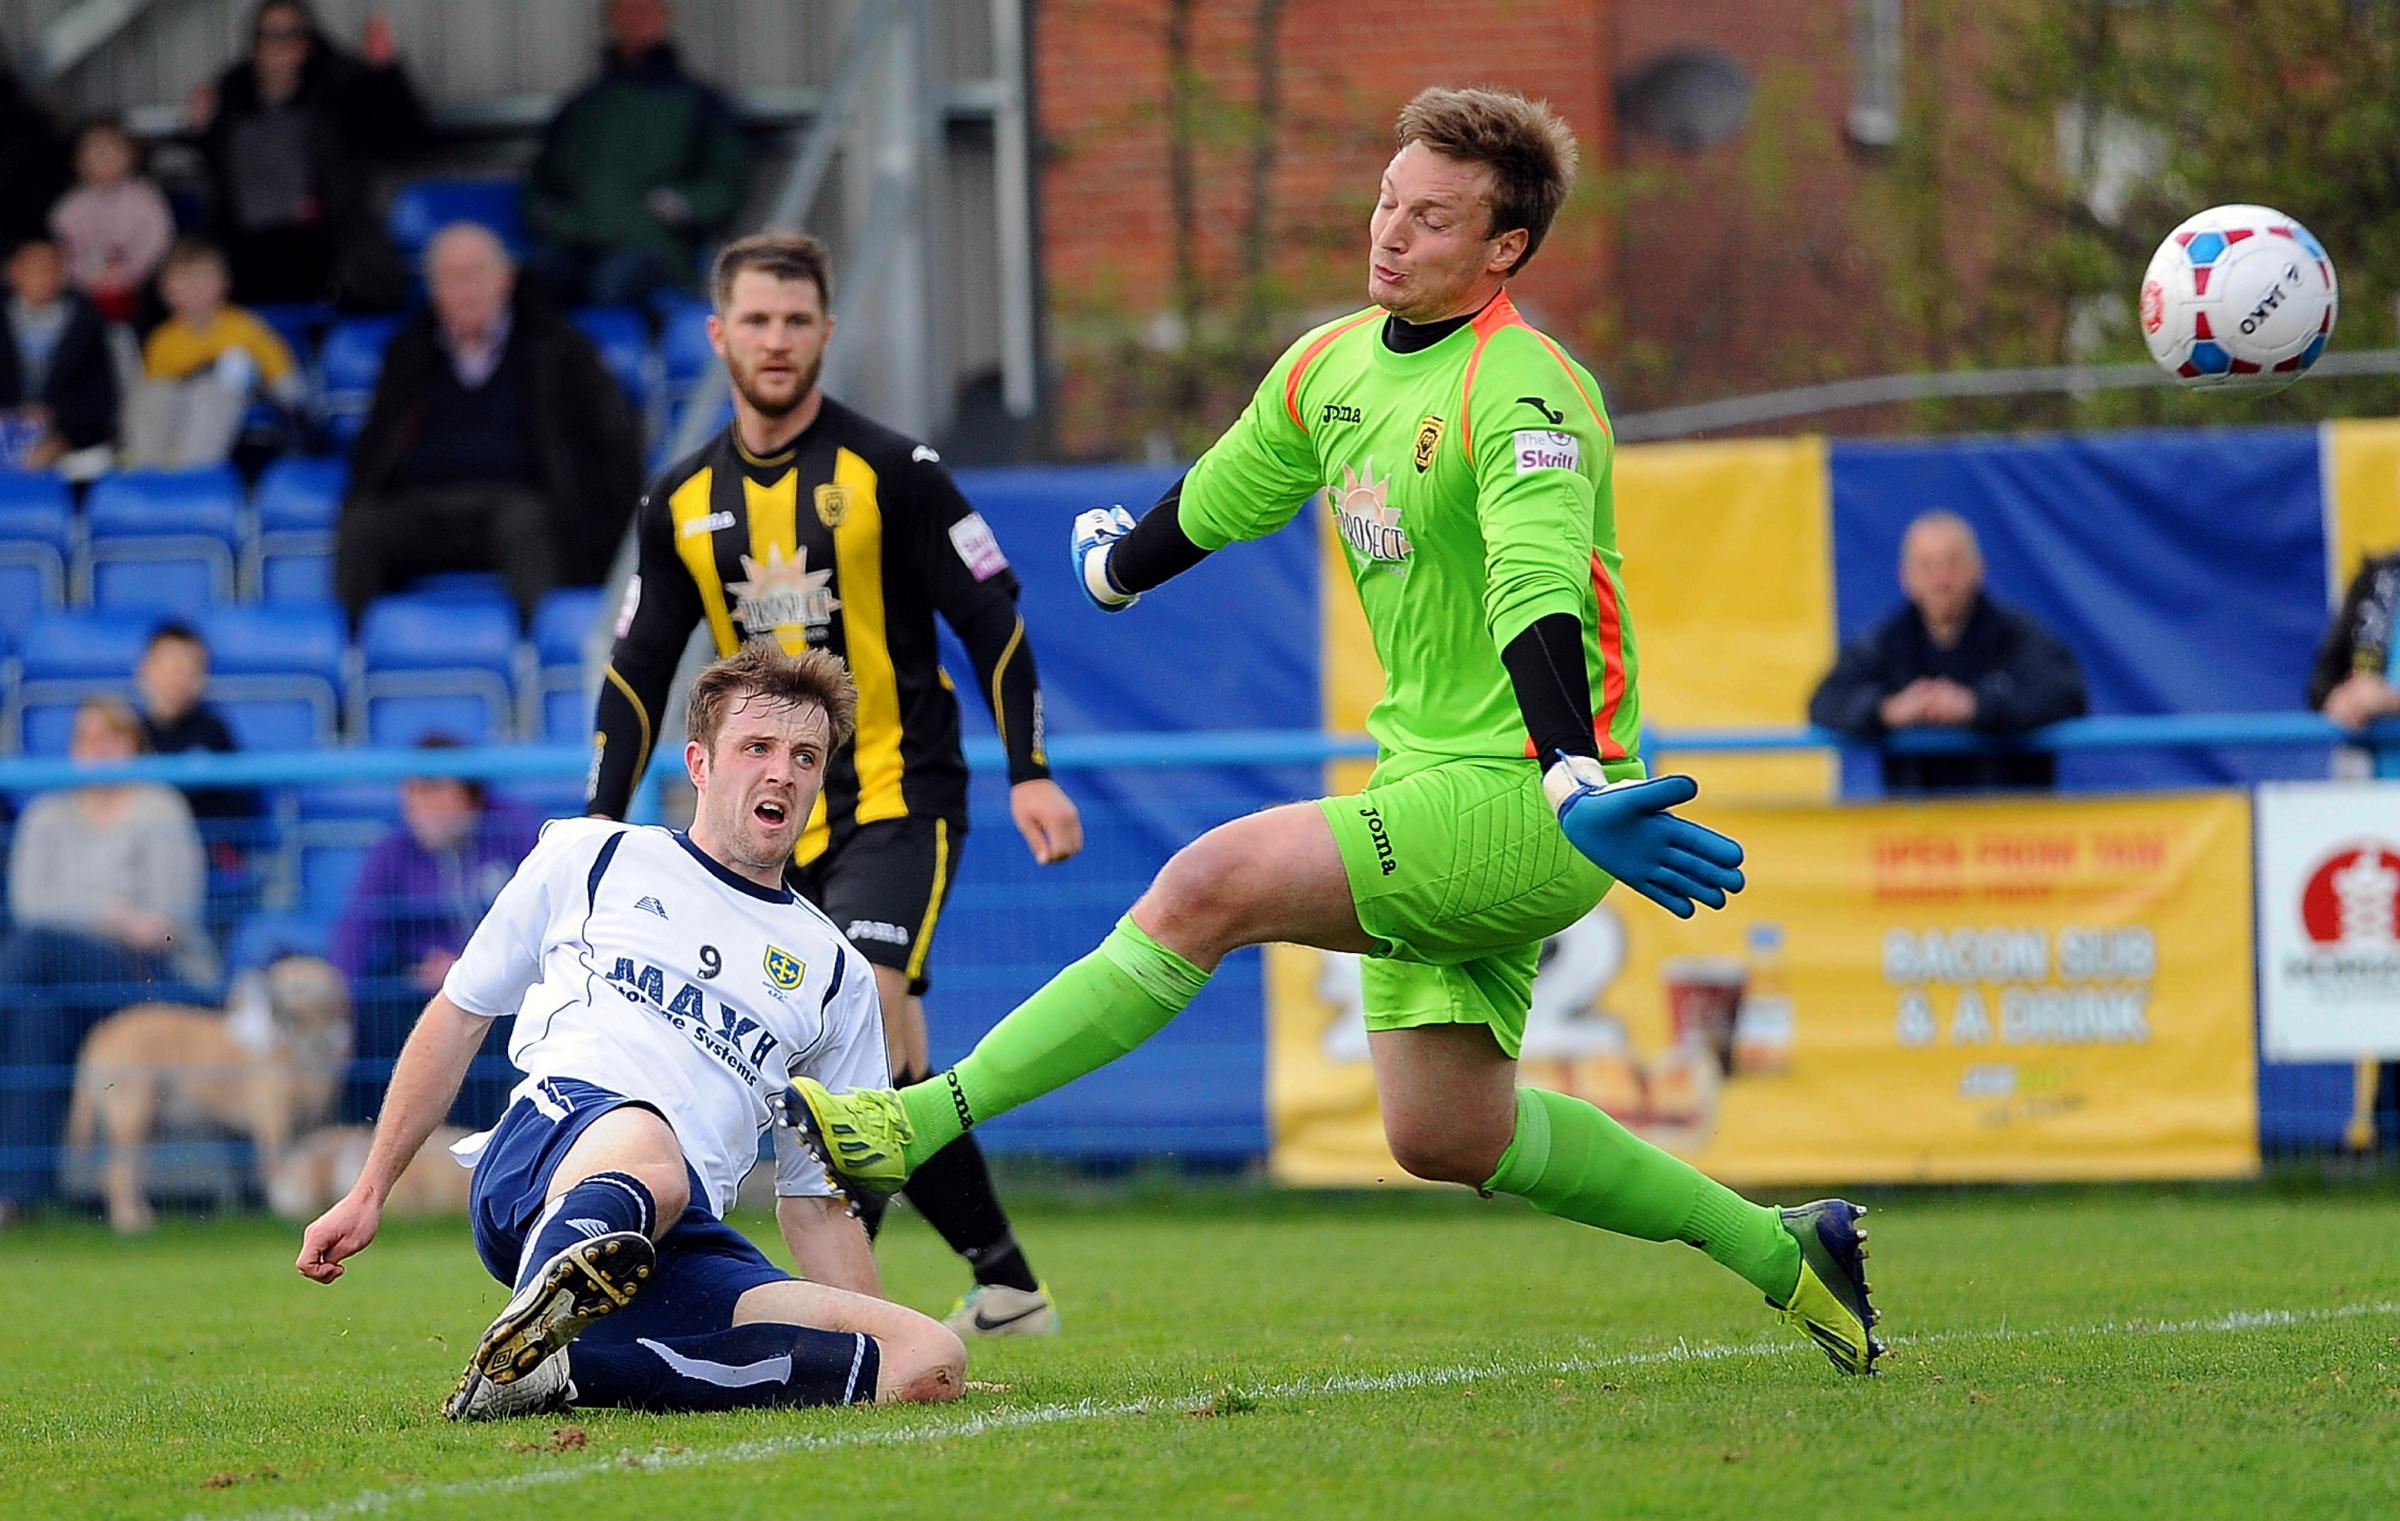 Bower hails Guiseley's 'outstanding' effort to reach play-offs